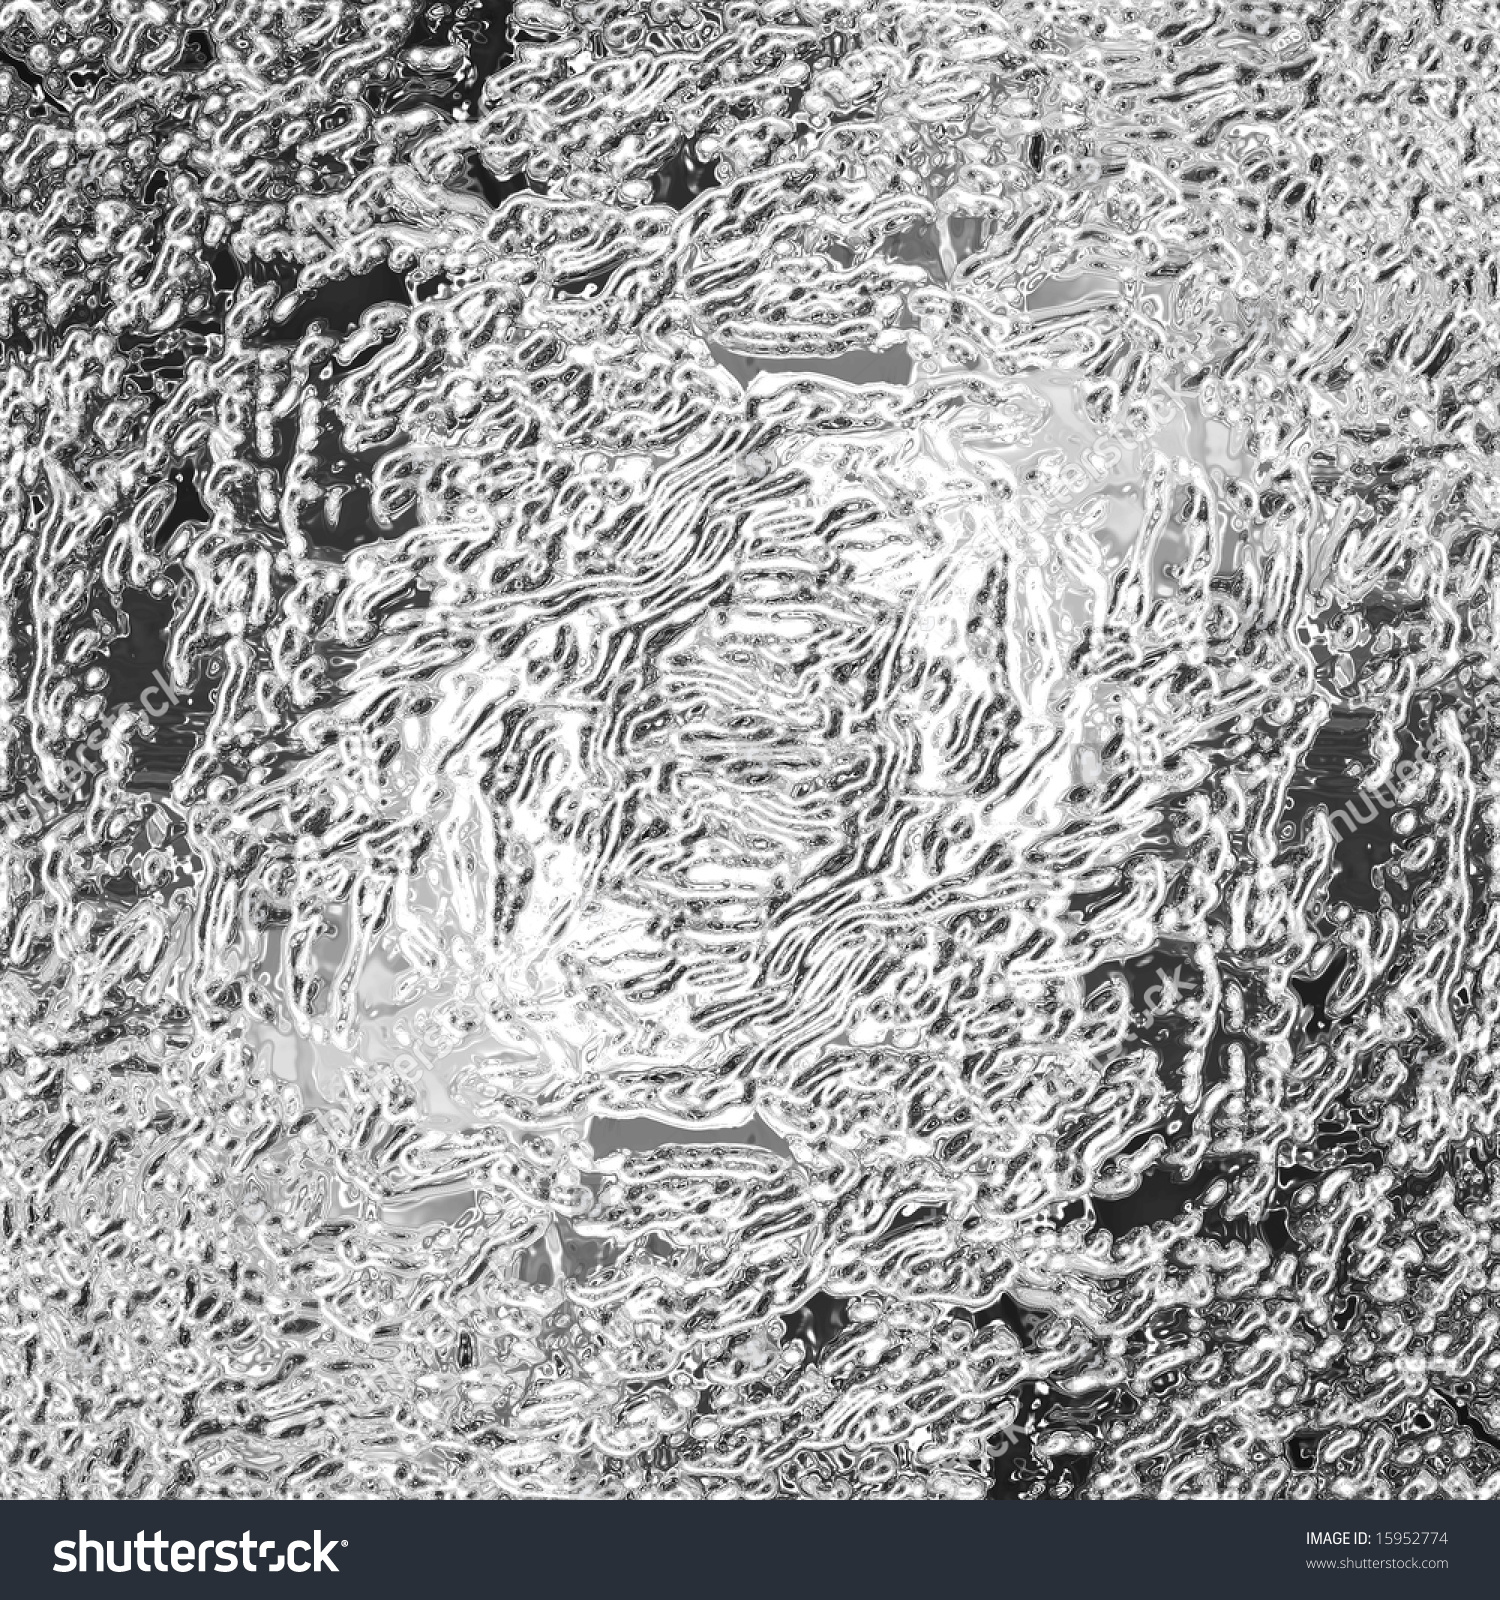 A Very Large Rendered Illustration Of Ripples In Molten Silver ...